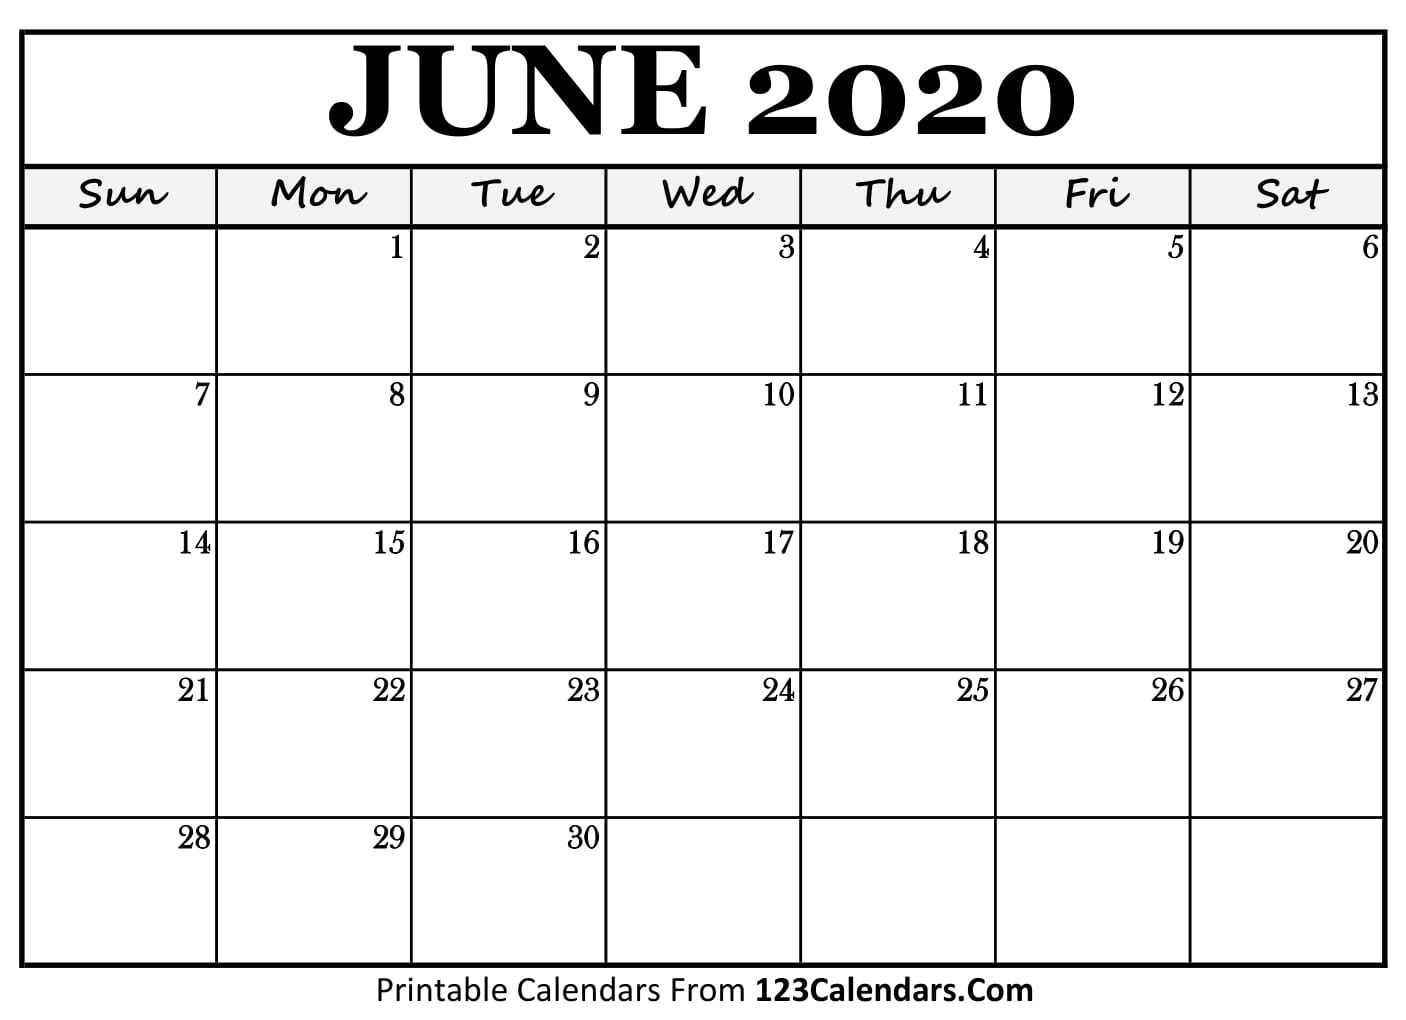 June 2020 Printable Calendar | 123Calendars-2020 Calendar Template With Catholic Holidays